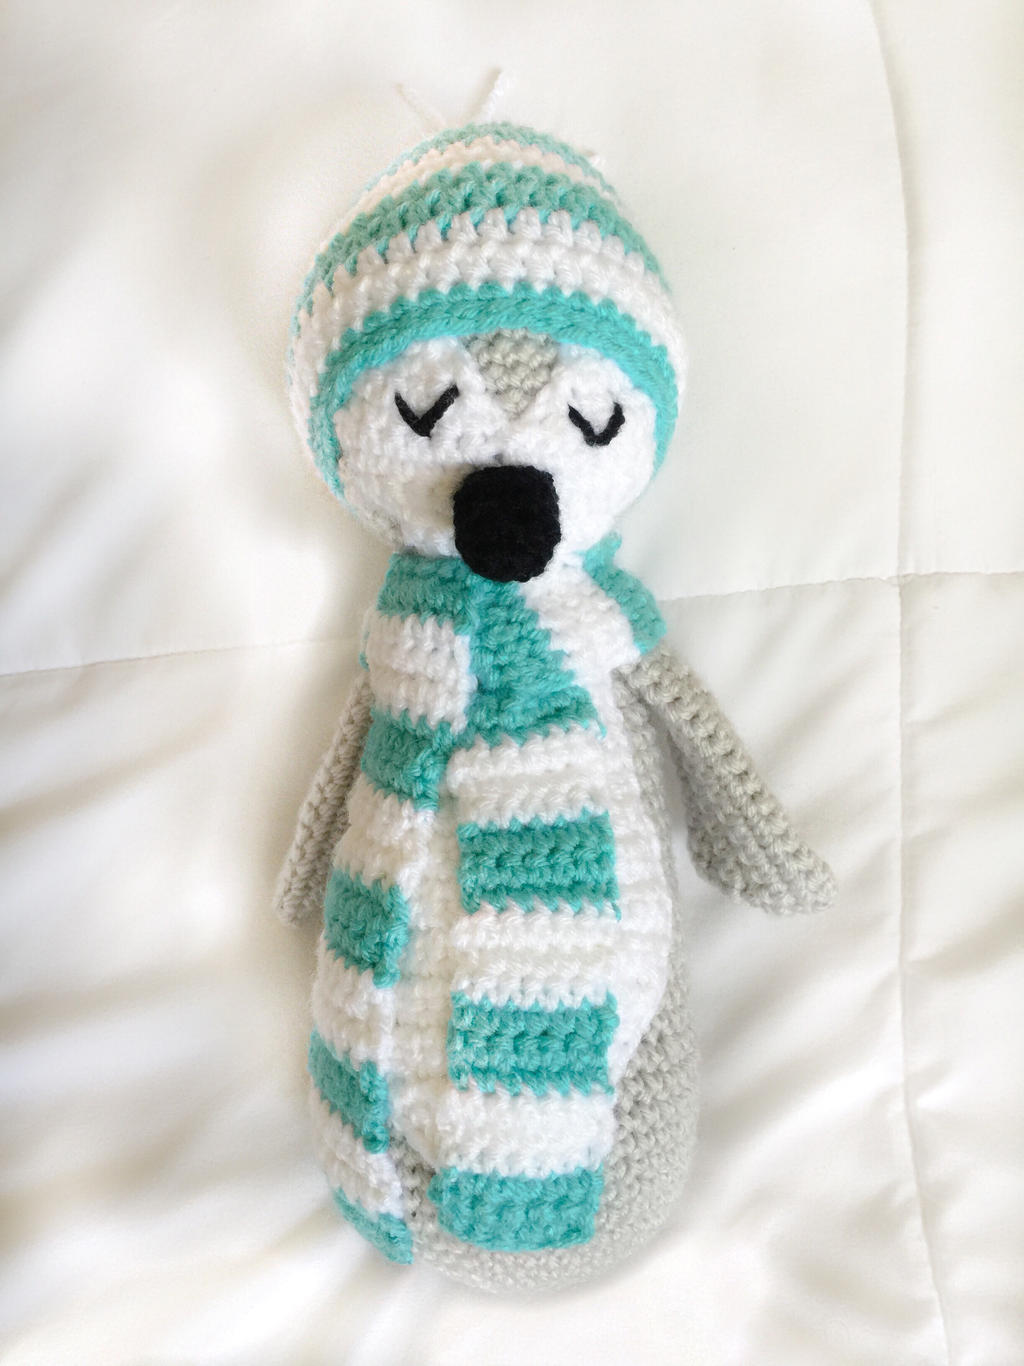 Crochet Sleepy Sarah Doll Amigurumi Free Pattern - Crochet & Knitting | 1366x1024